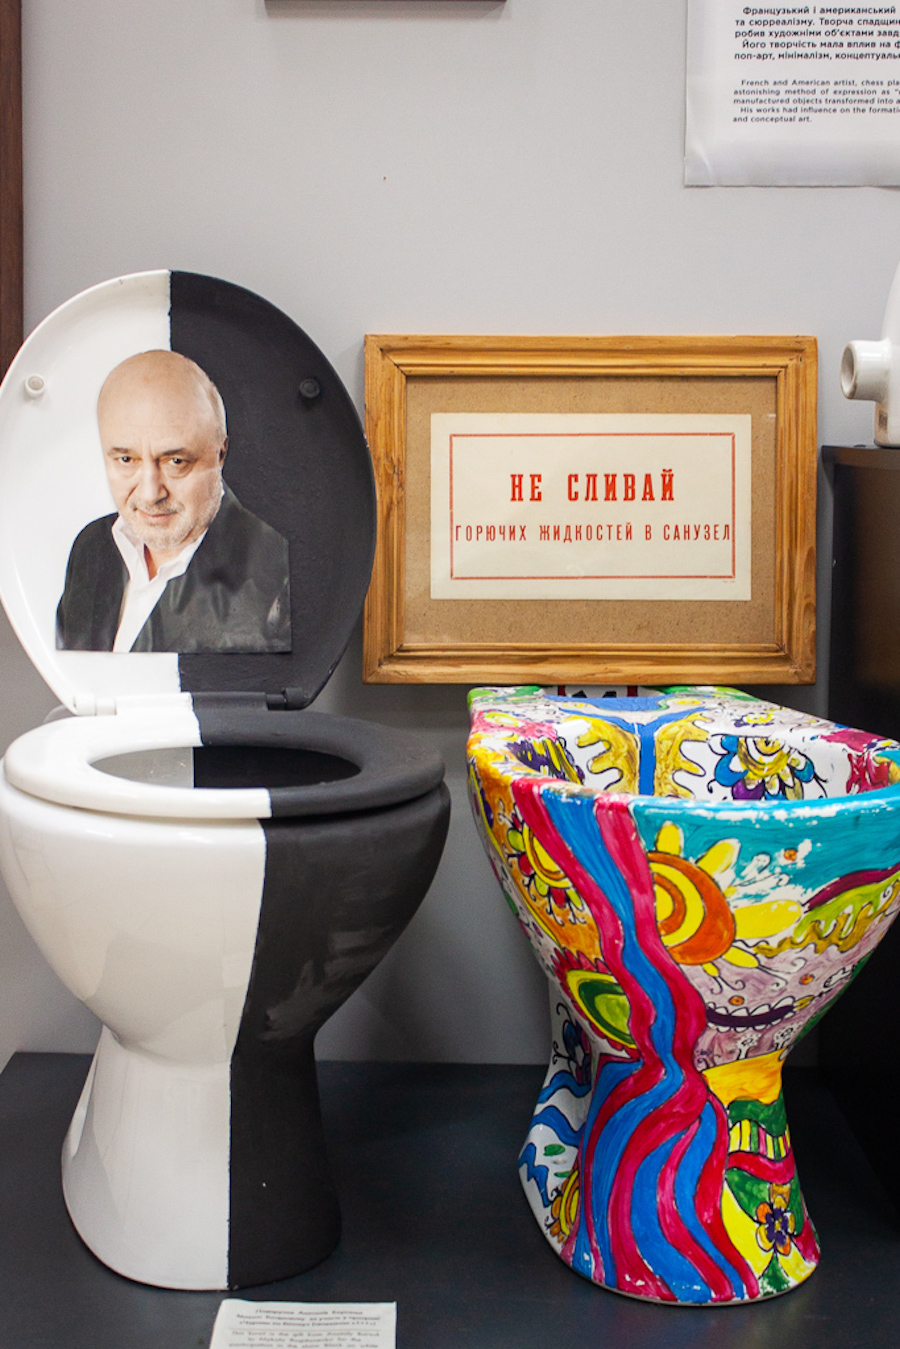 Museum Of Toilet History - Toilets As Art